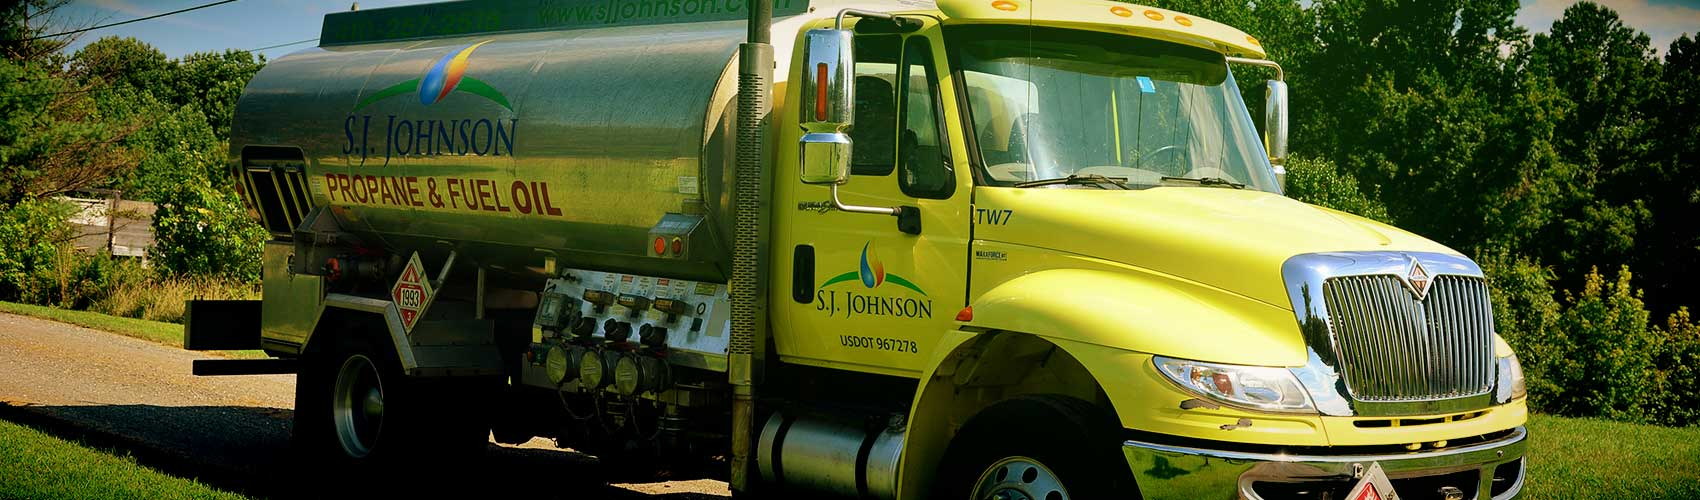 SJ Johson, Inc Fuel Oil